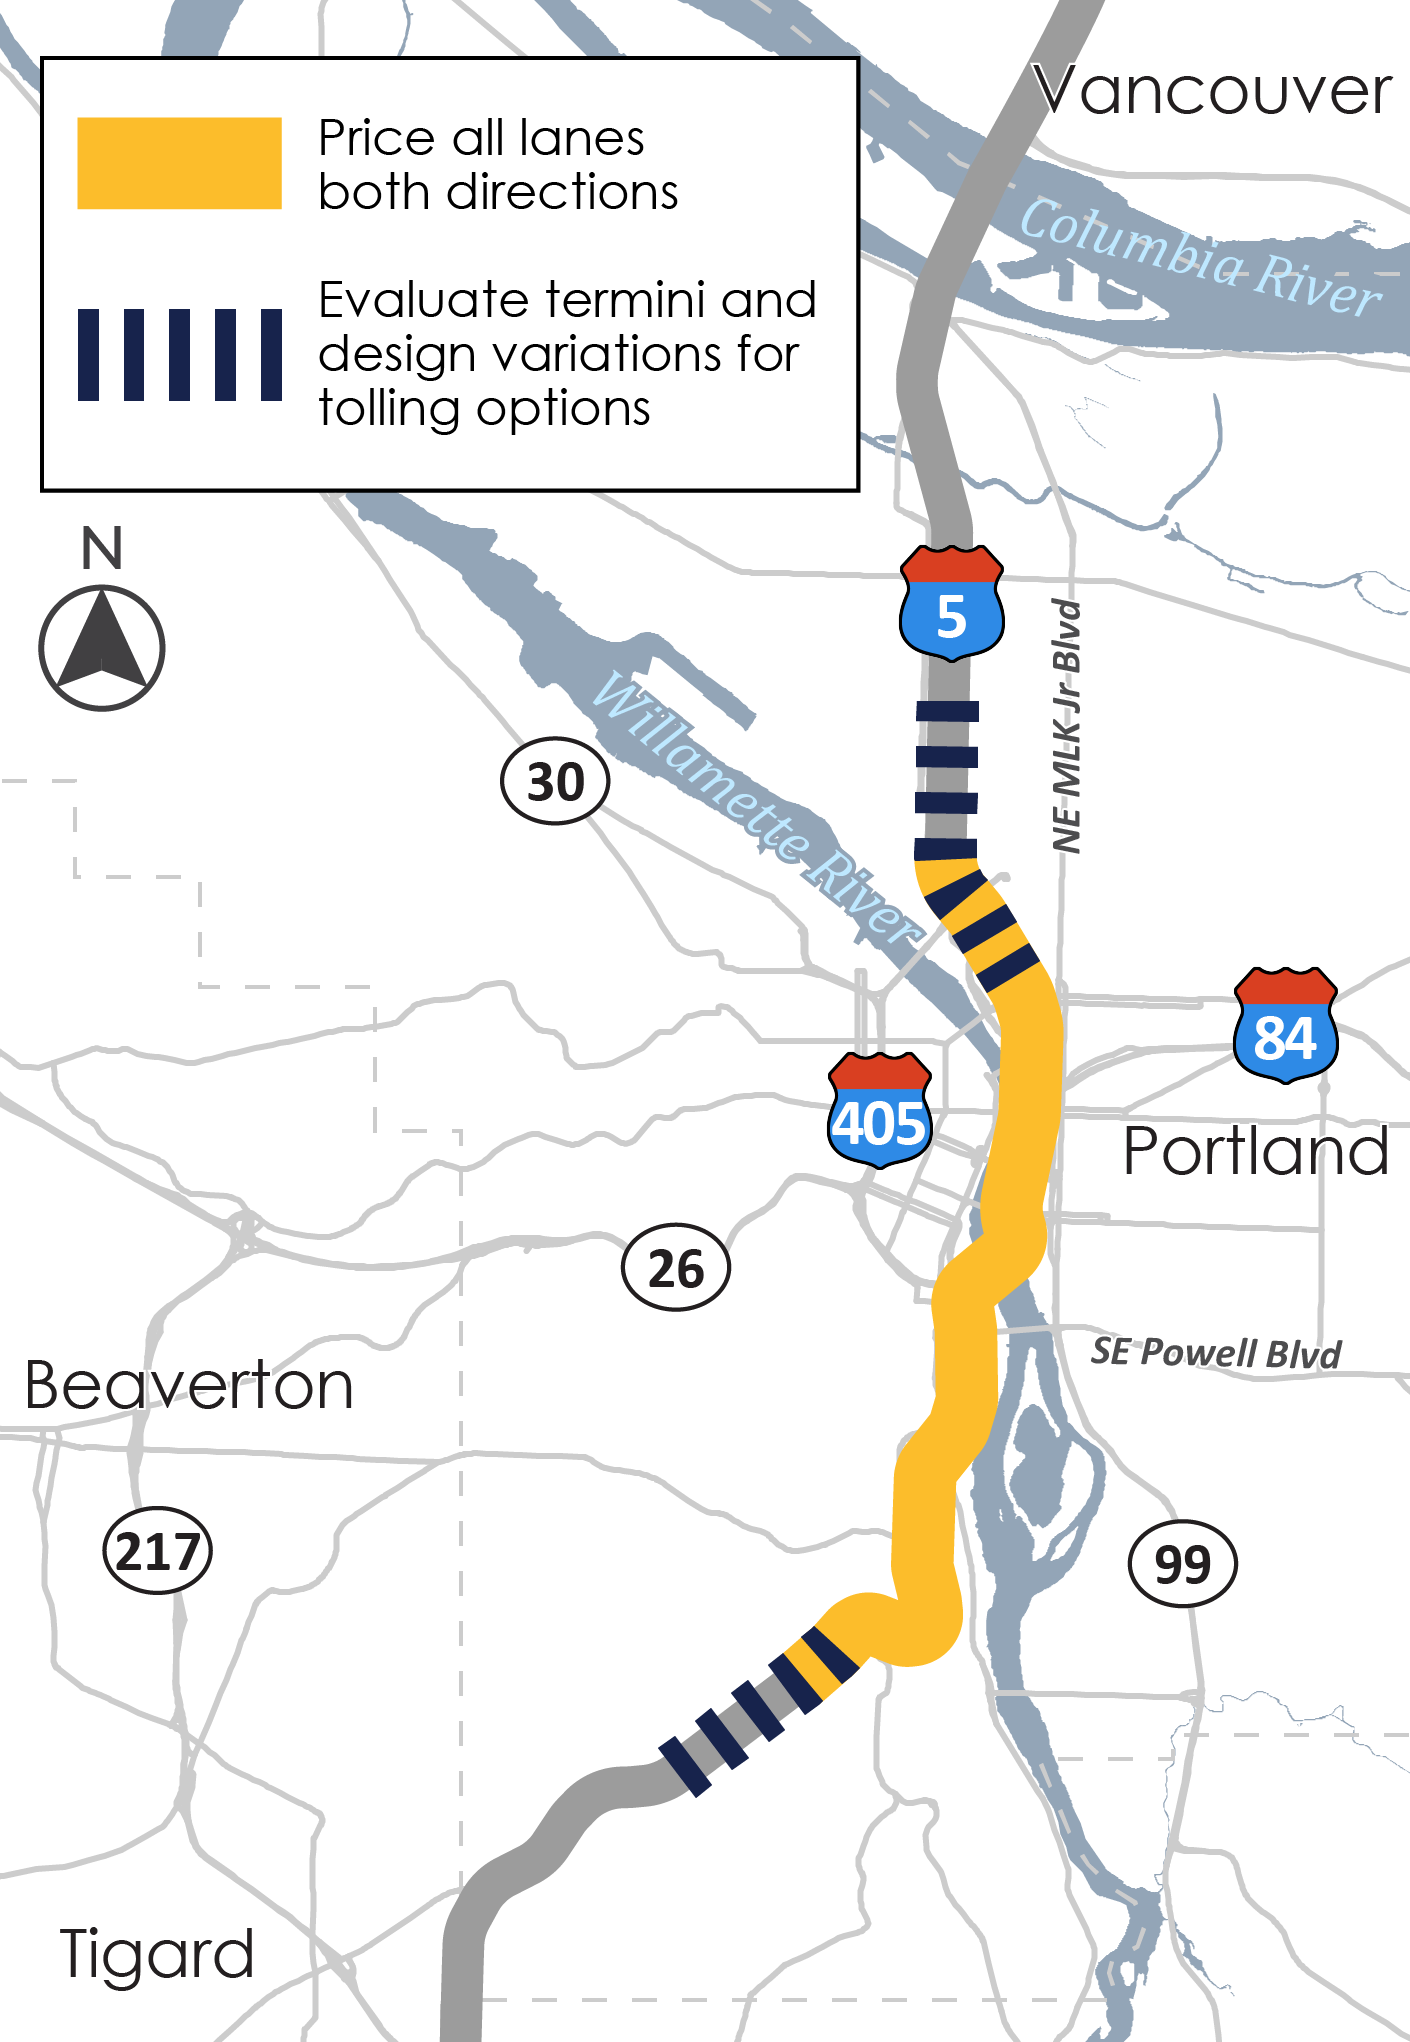 A map shows that all lanes on I-5 through central Portland would be priced and the endpoints of the toll will be evaluated.